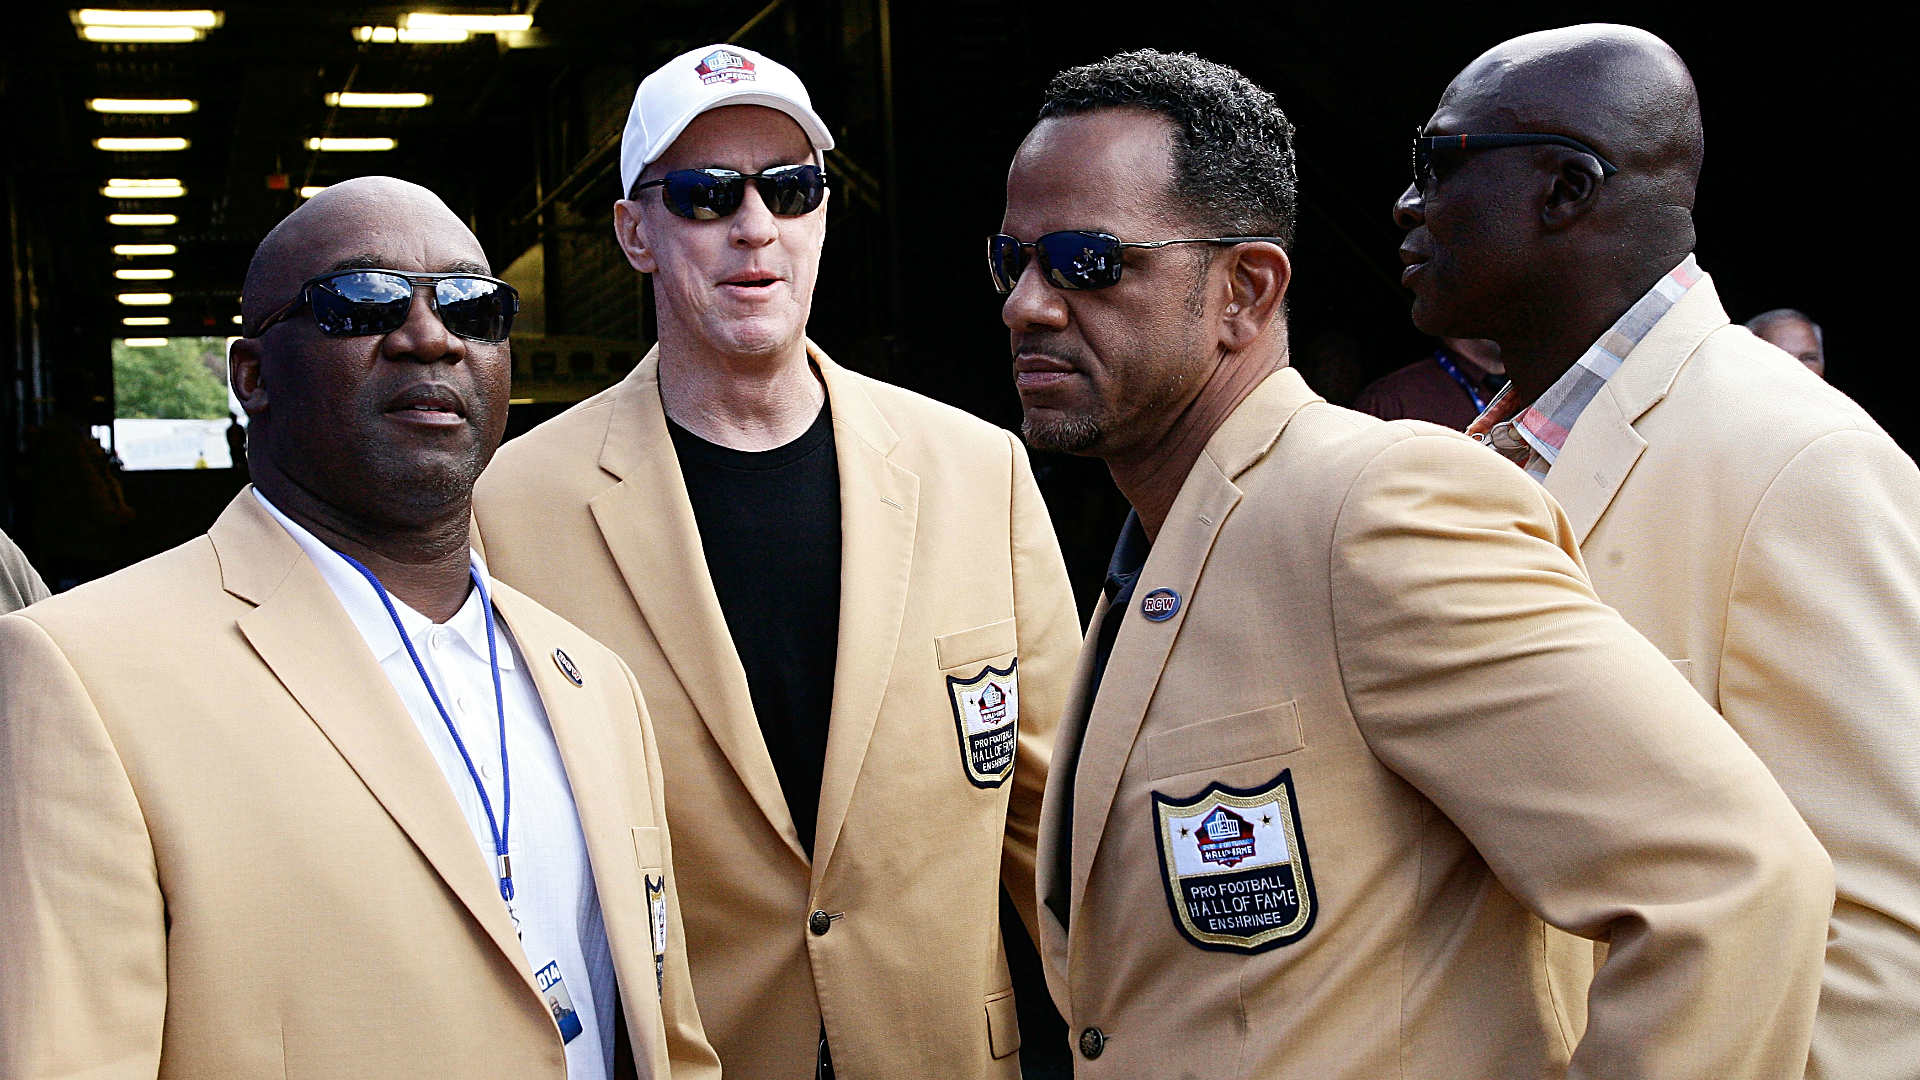 new product 06292 c6df0 Thursday's gold jacket ceremony kicks off Hall of Fame ...